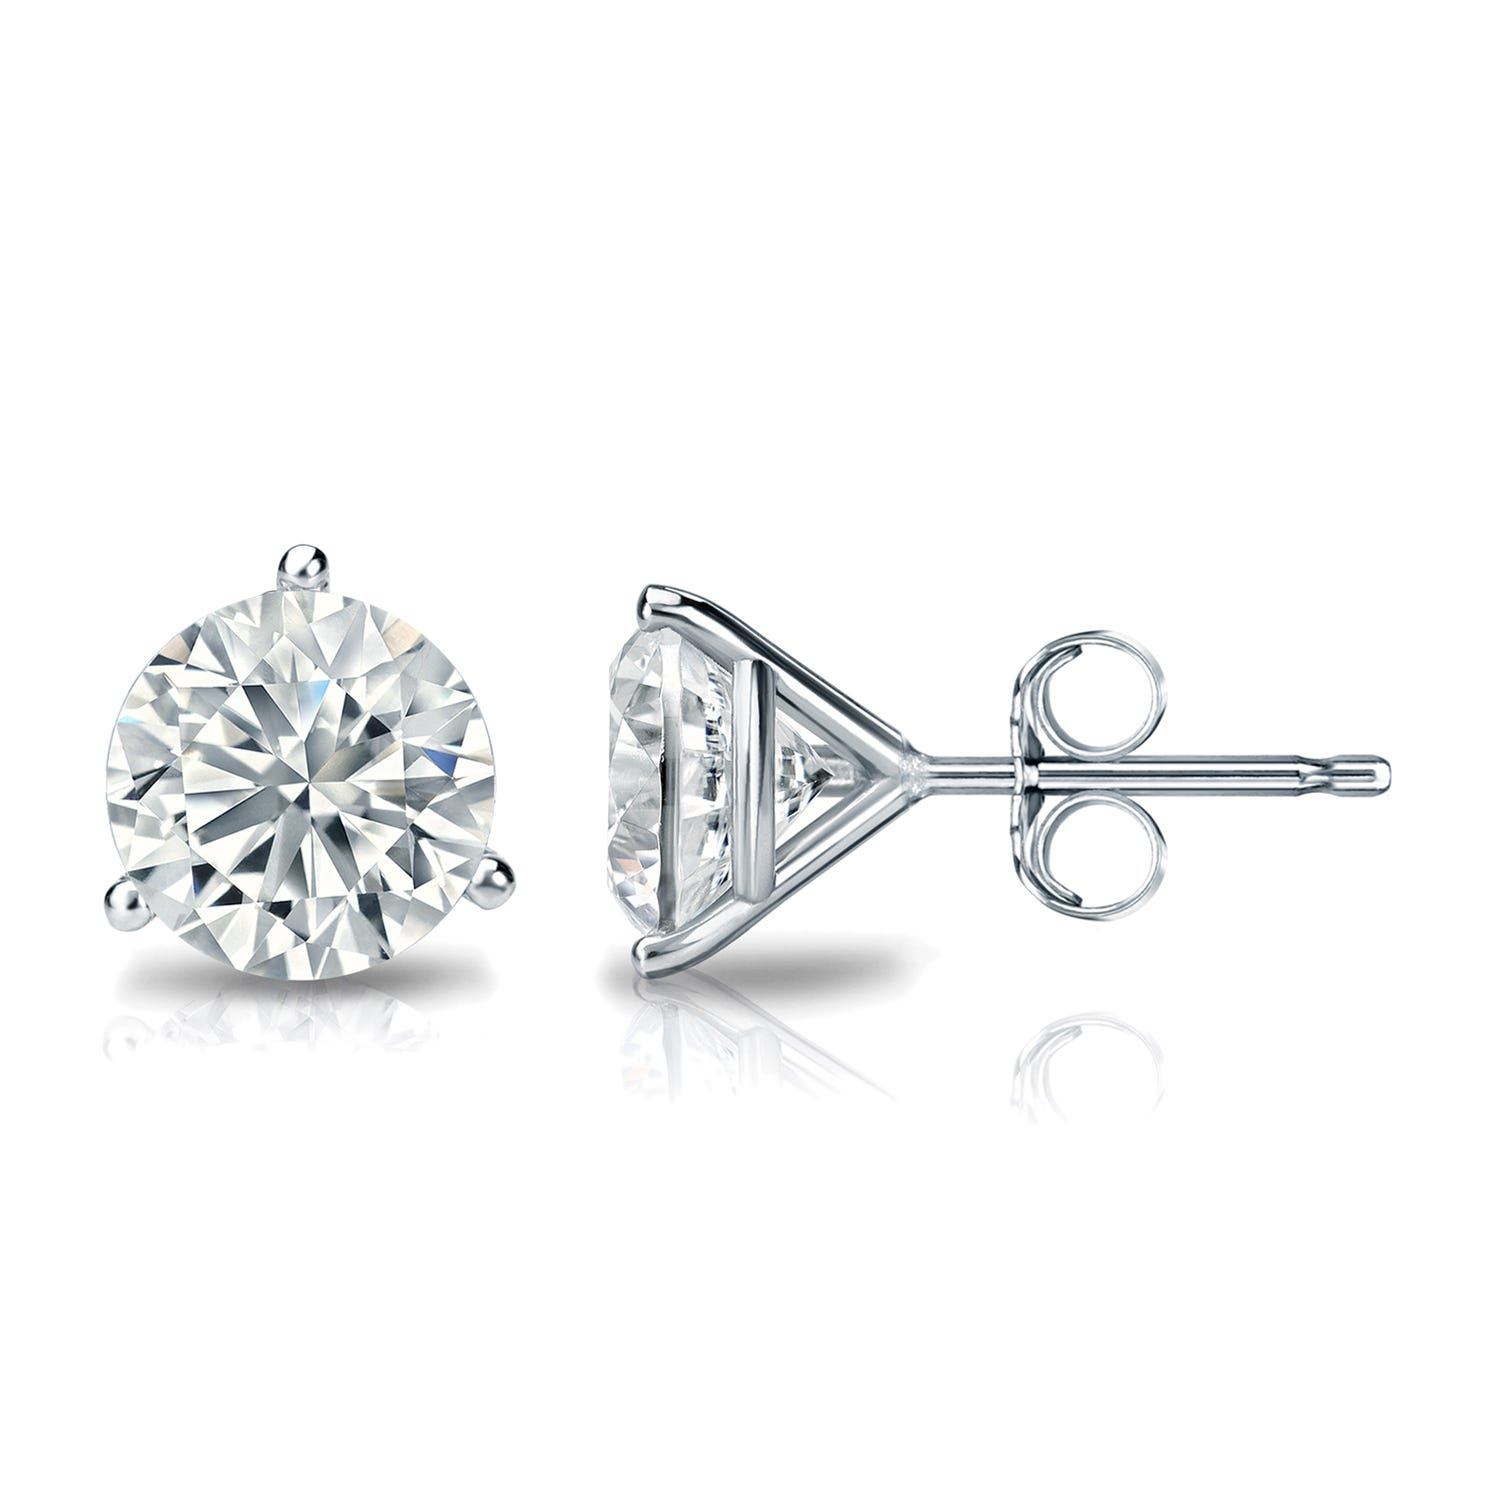 1-1/2 CTTW Round Diamond Solitaire Stud Earrings IJ SI2 in 14K White Gold IGI Certified 3-Prong Setting